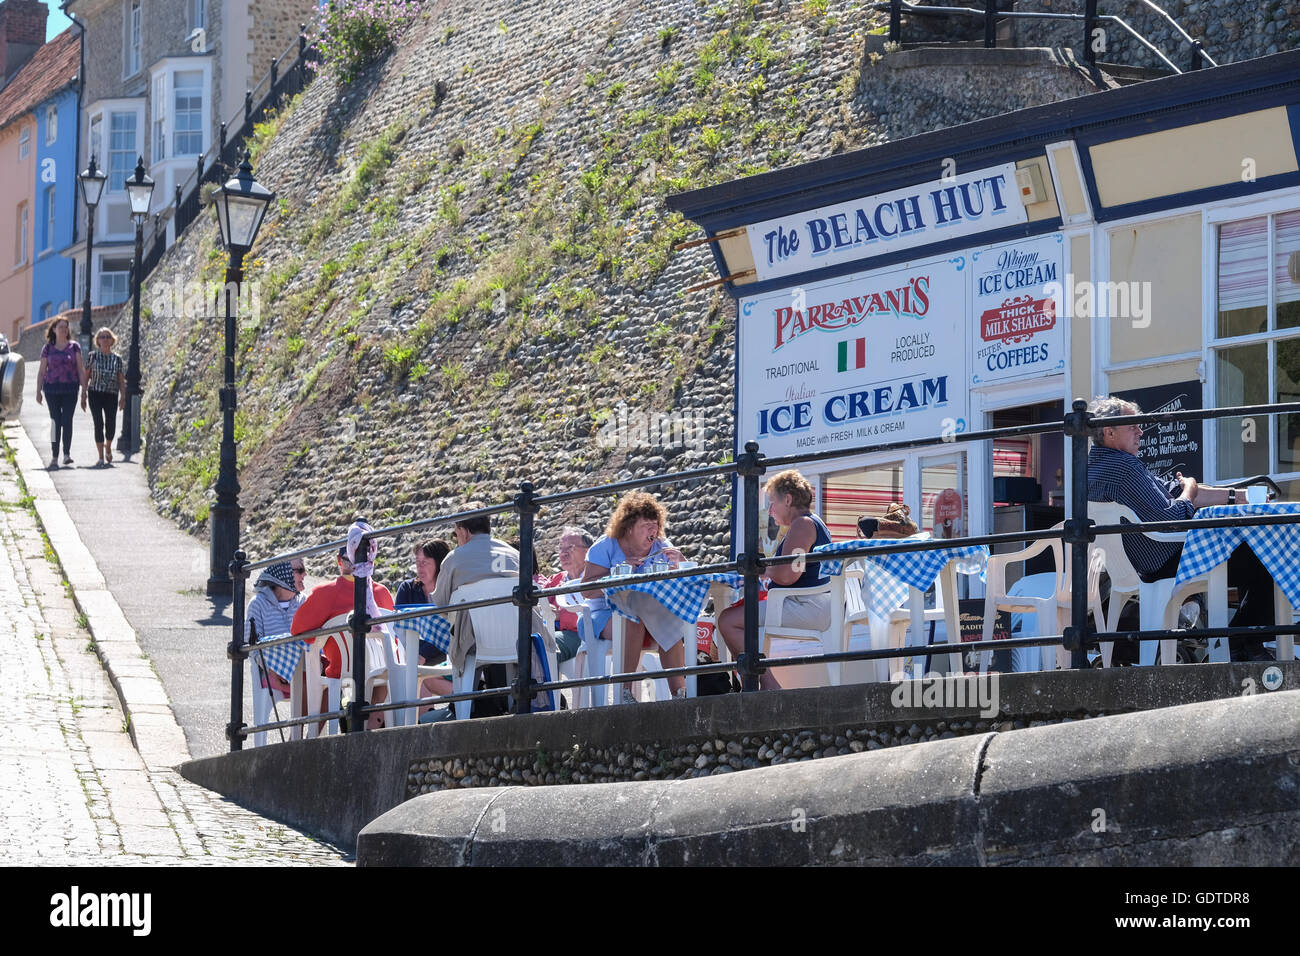 The Beach Hut Cafe in Cromer, Norfolk - Stock Image